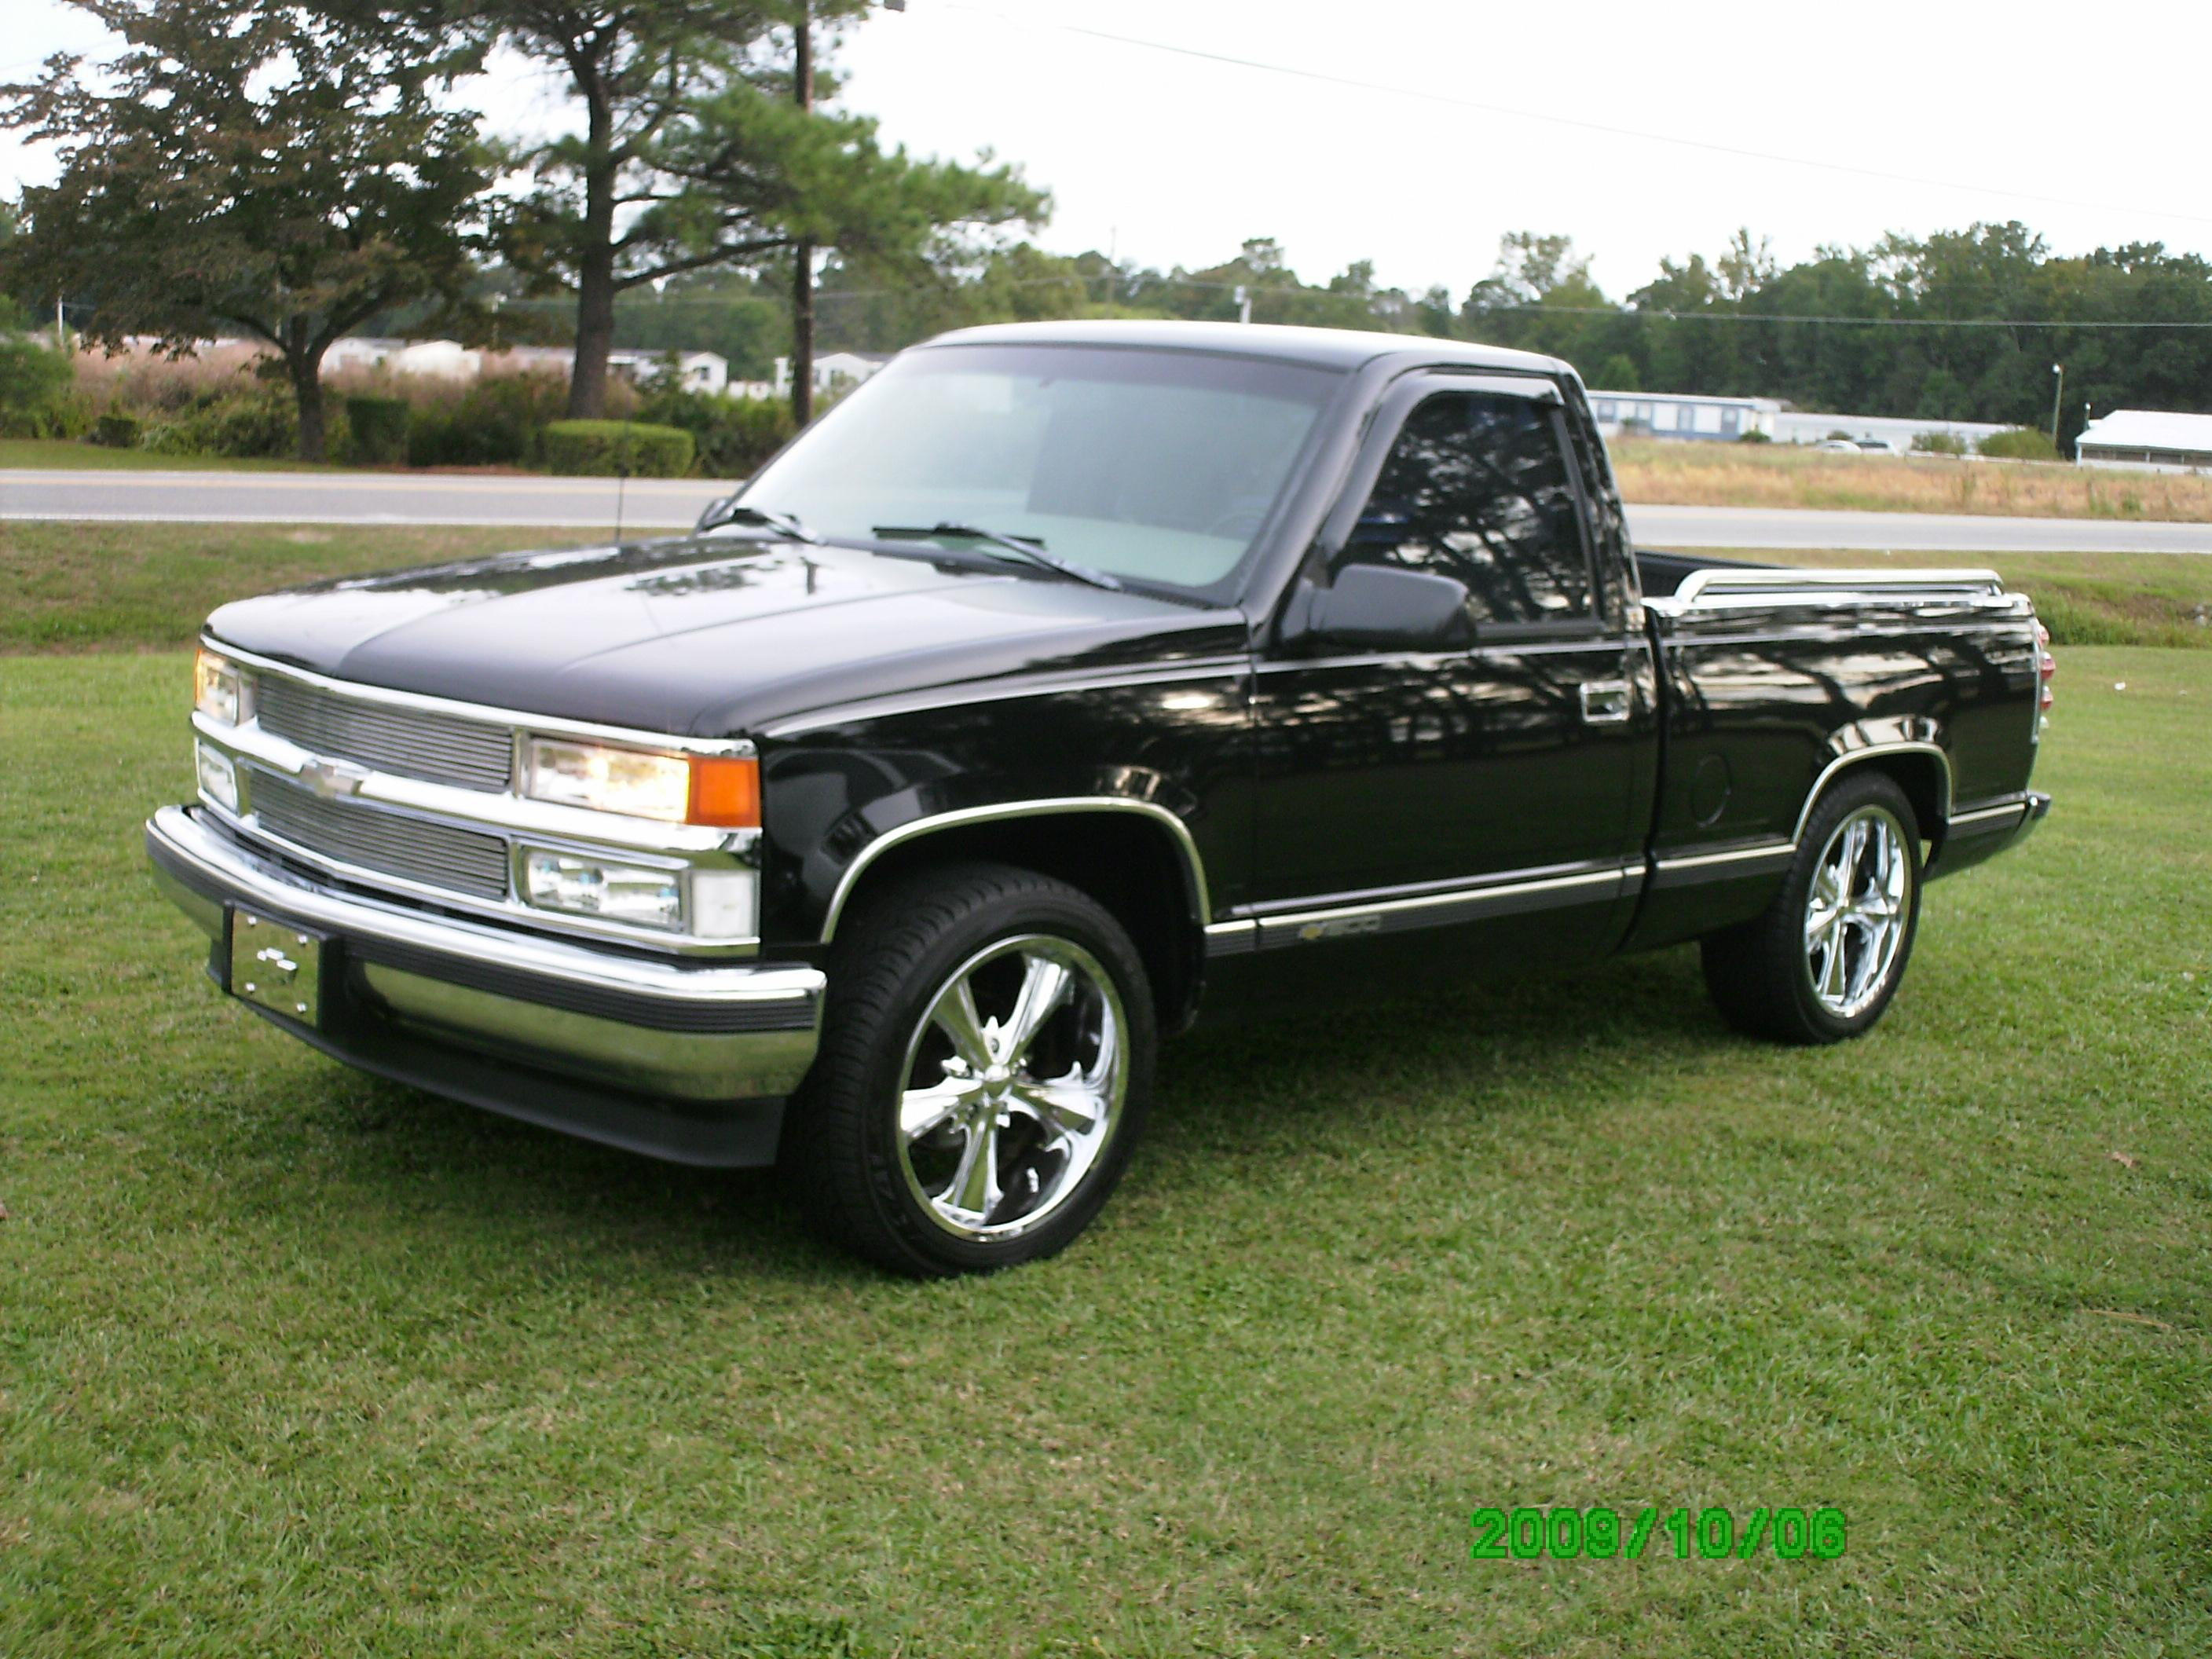 toosweetdarden 1996 chevrolet silverado 1500 regular cab. Black Bedroom Furniture Sets. Home Design Ideas